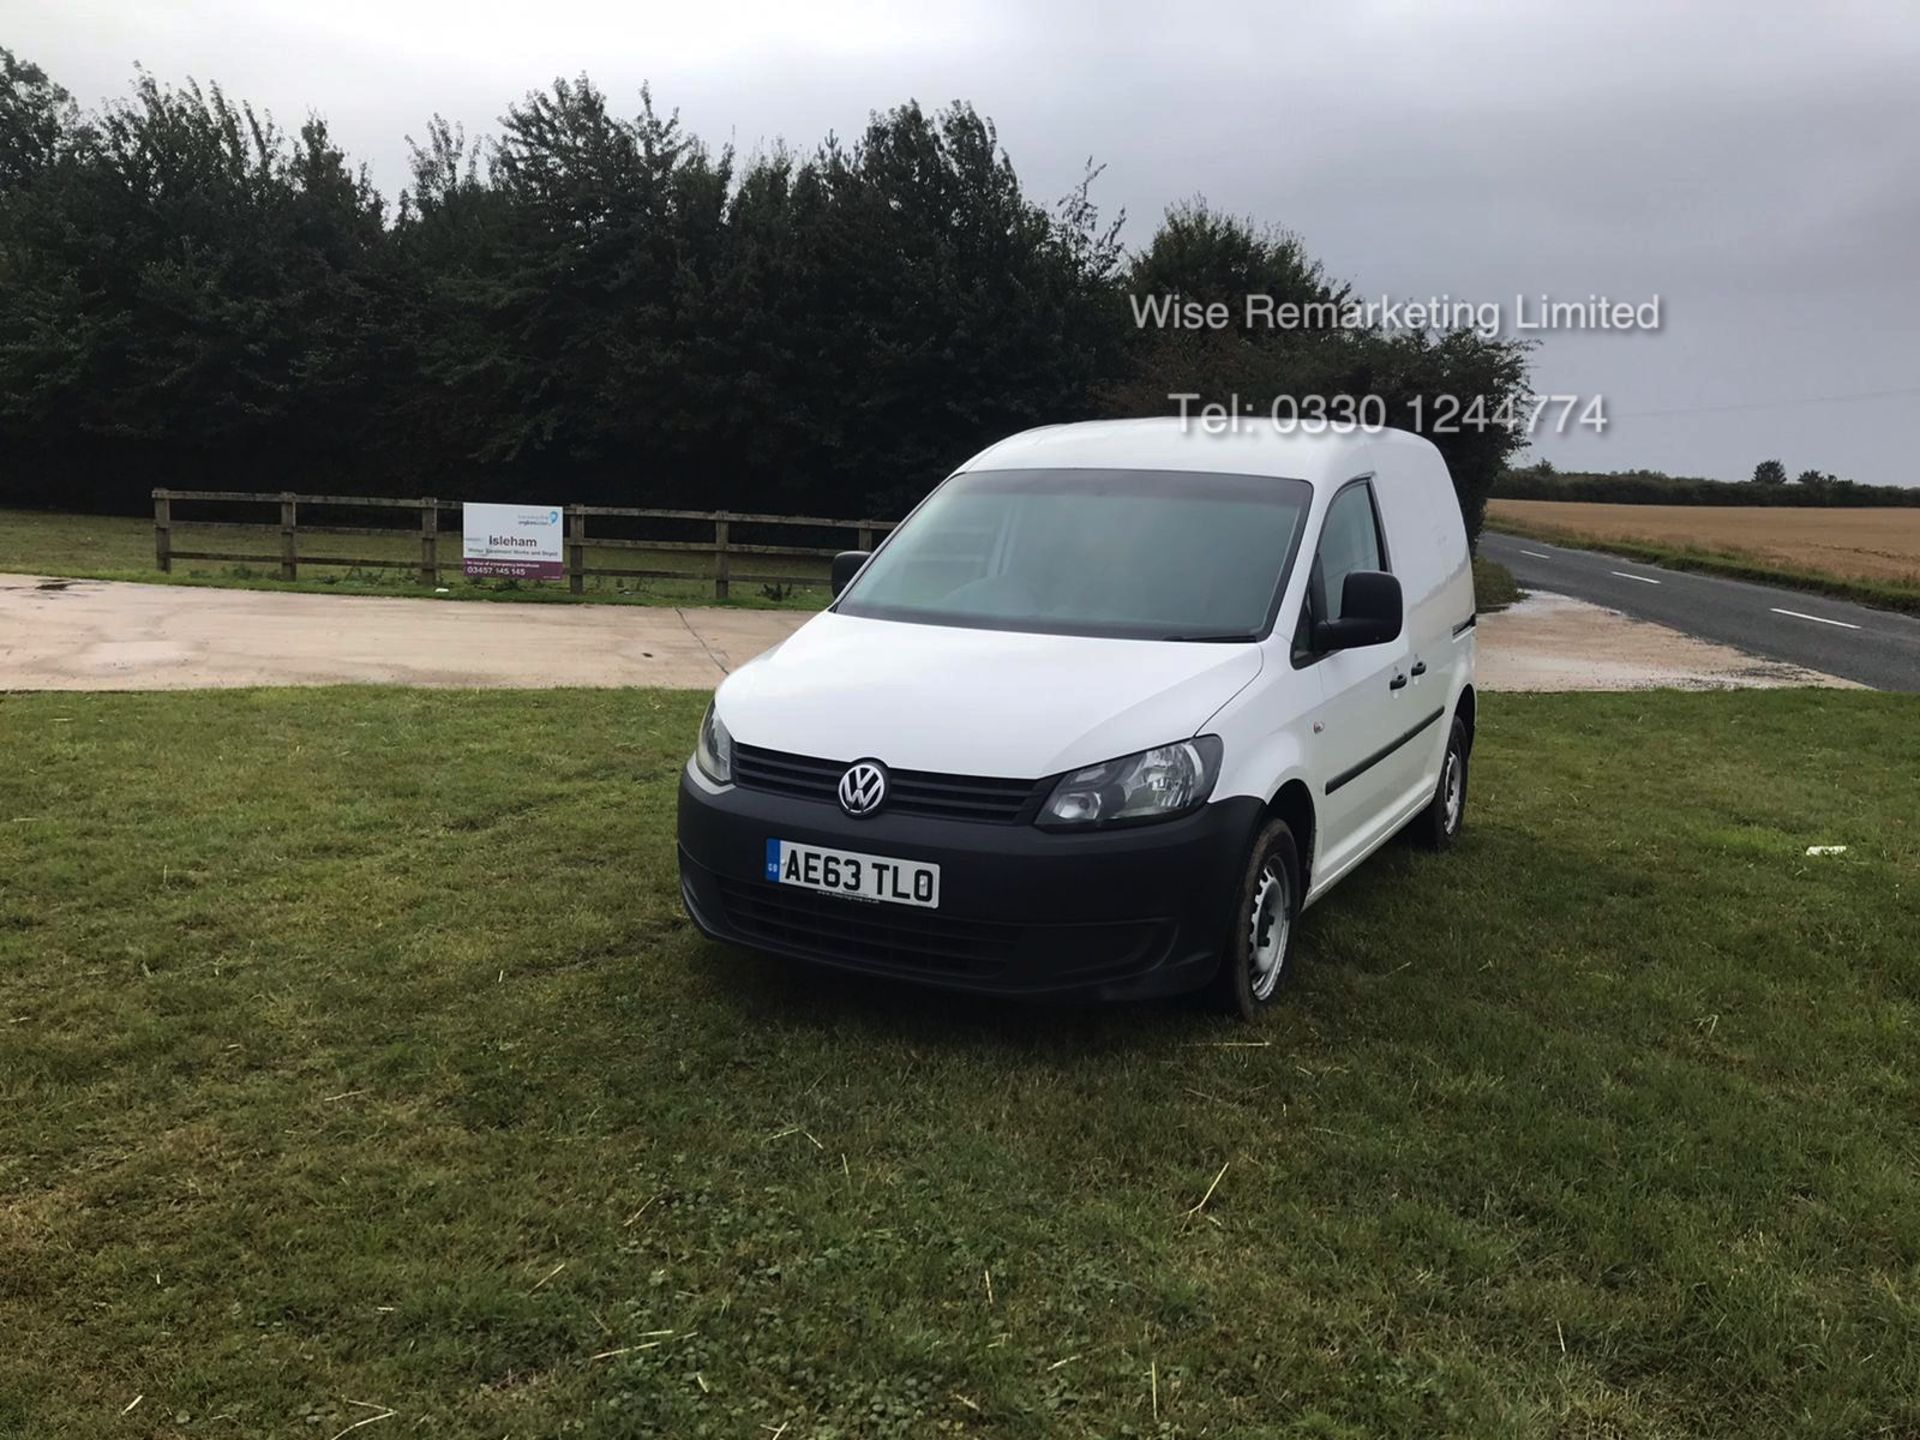 Lot 38 - Volkswagen Caddy C20 + Startline 1.6 Tdi - 2014 Model - White